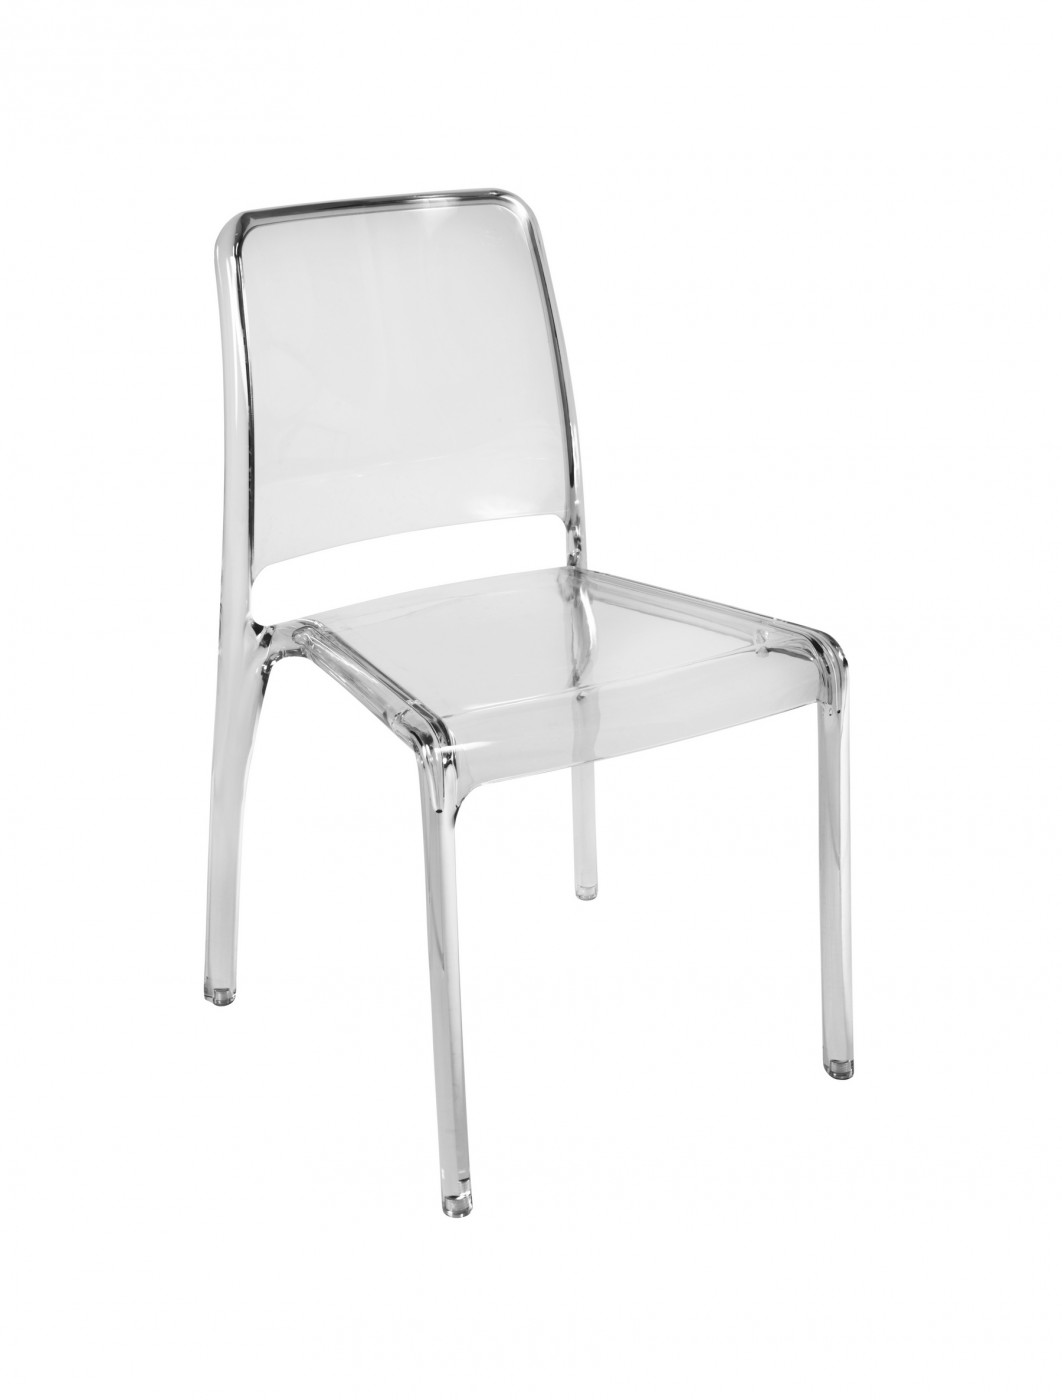 Perfect Clarity Designer Polycarbonate Chairs 6908 (Clear/Smoke)   4 Pack    Enlarged View